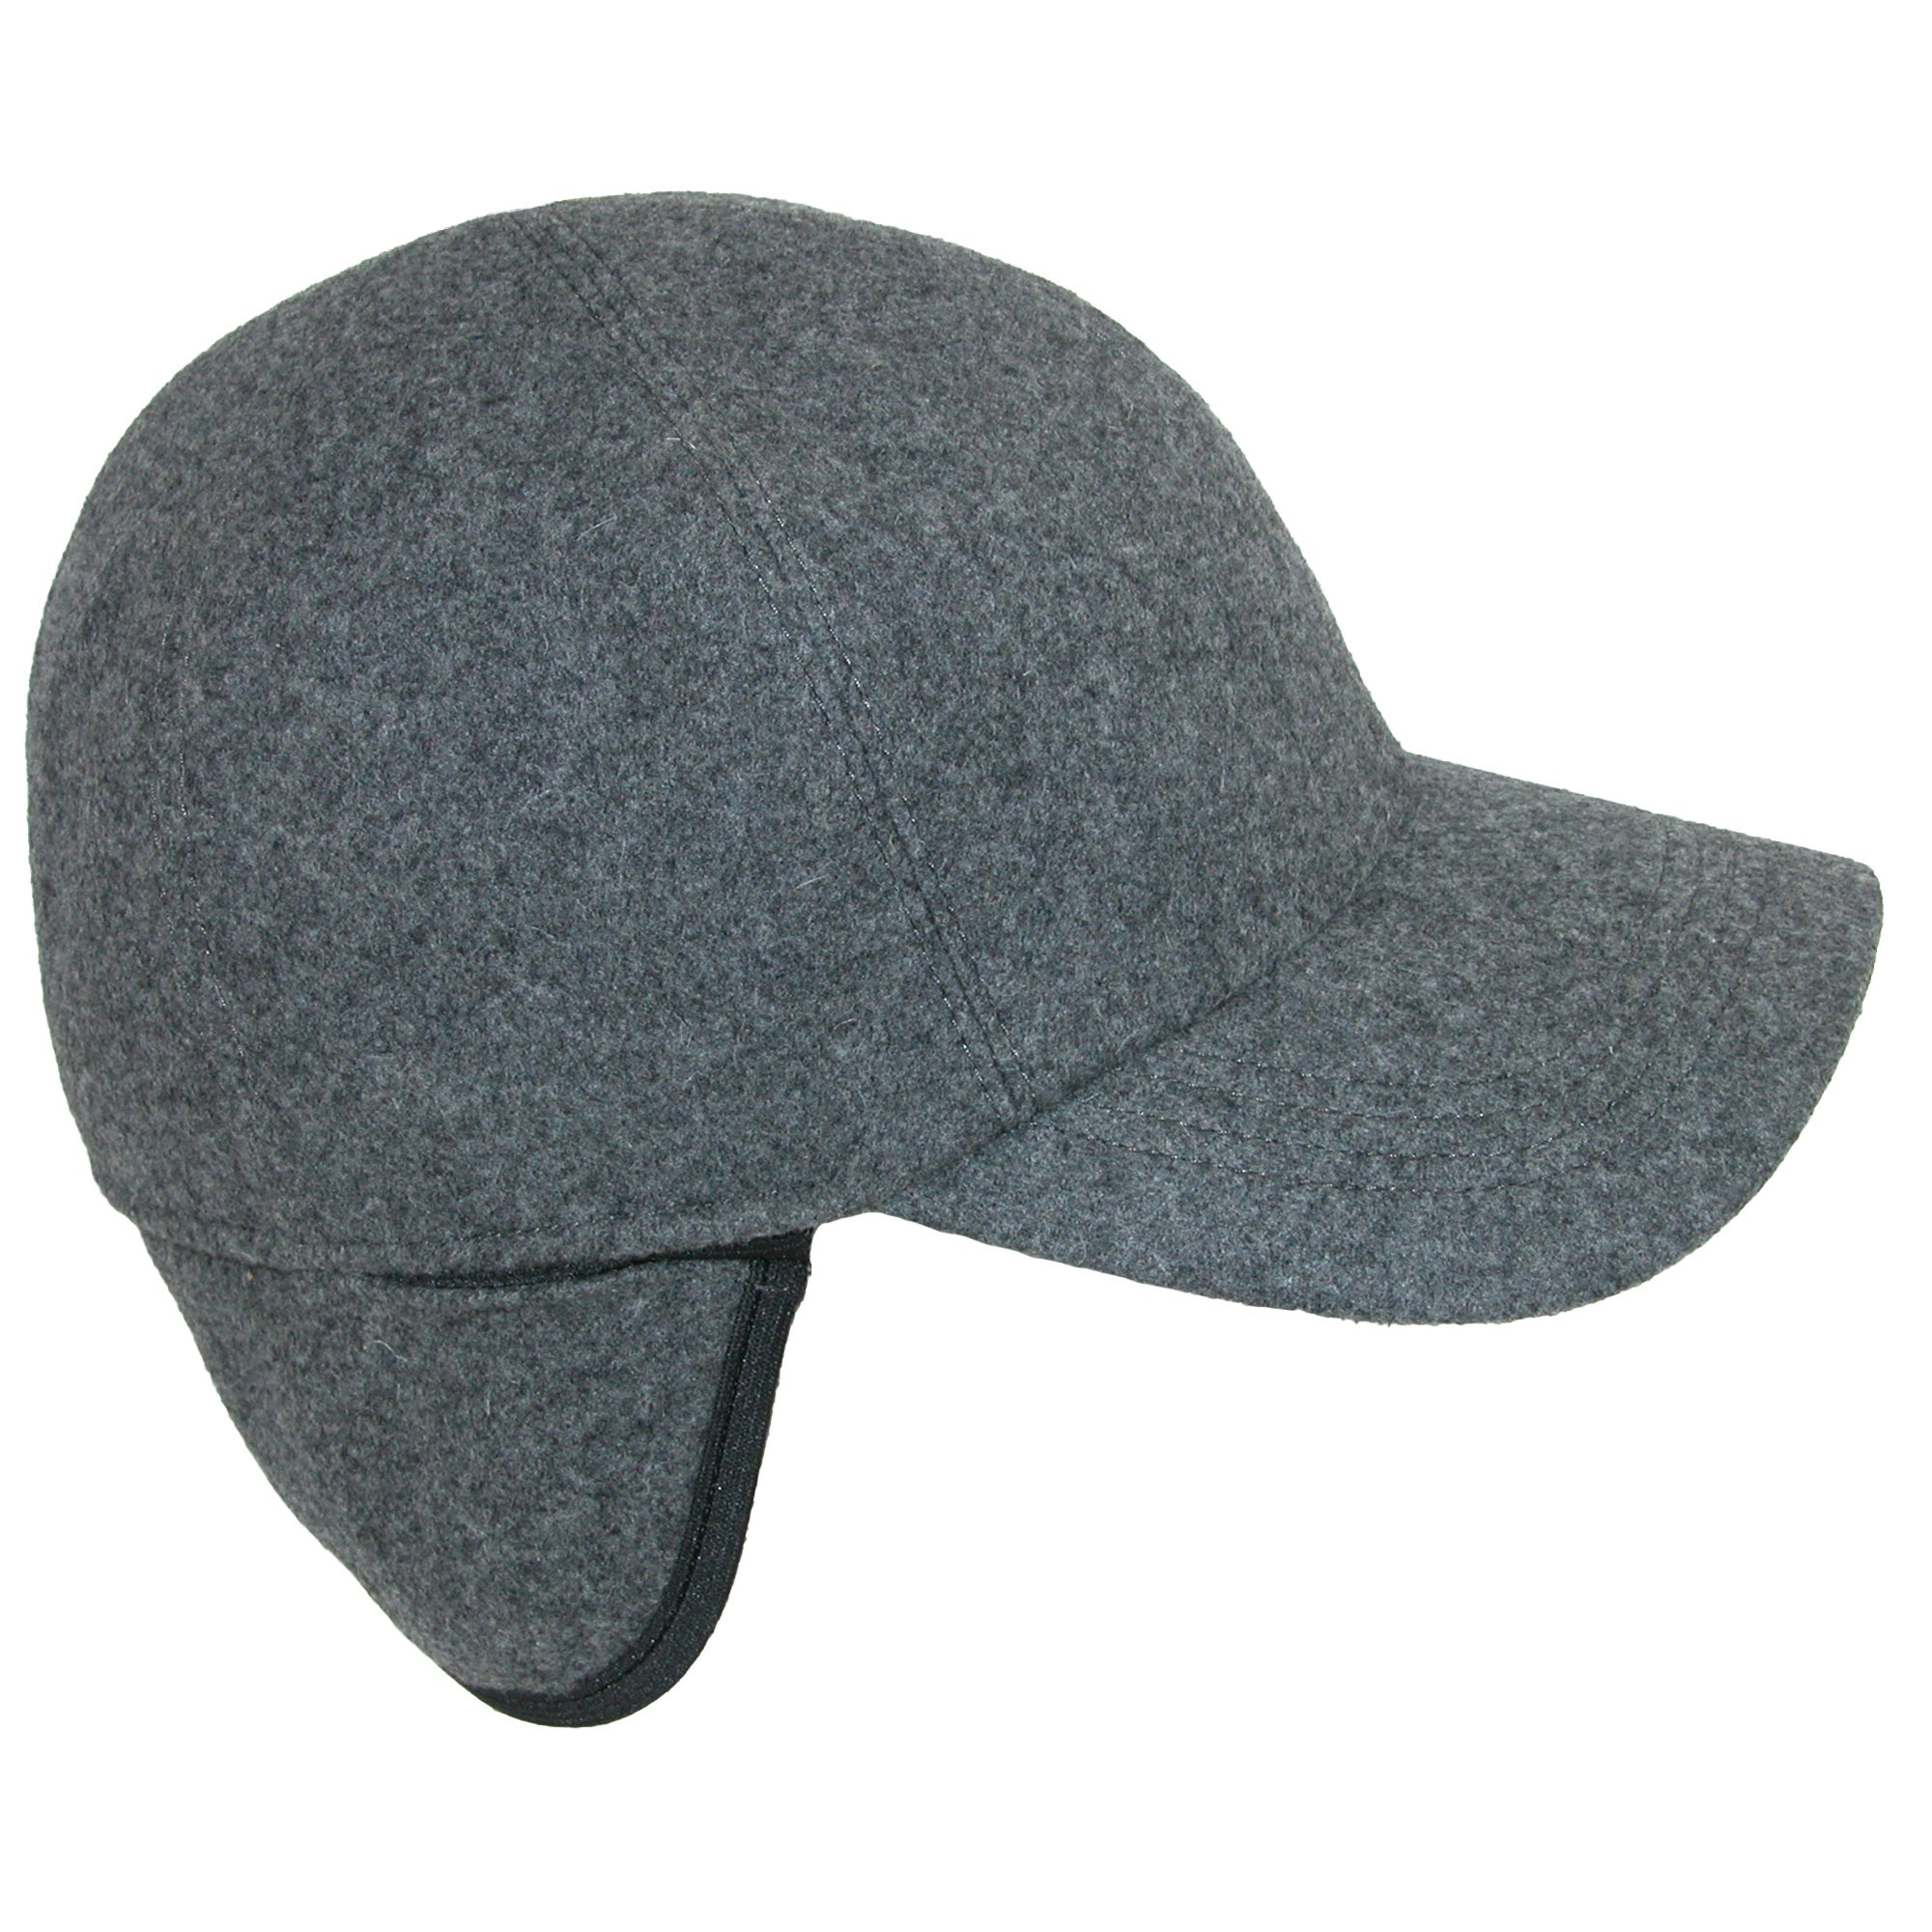 Image result for A baseball cap with ear flaps